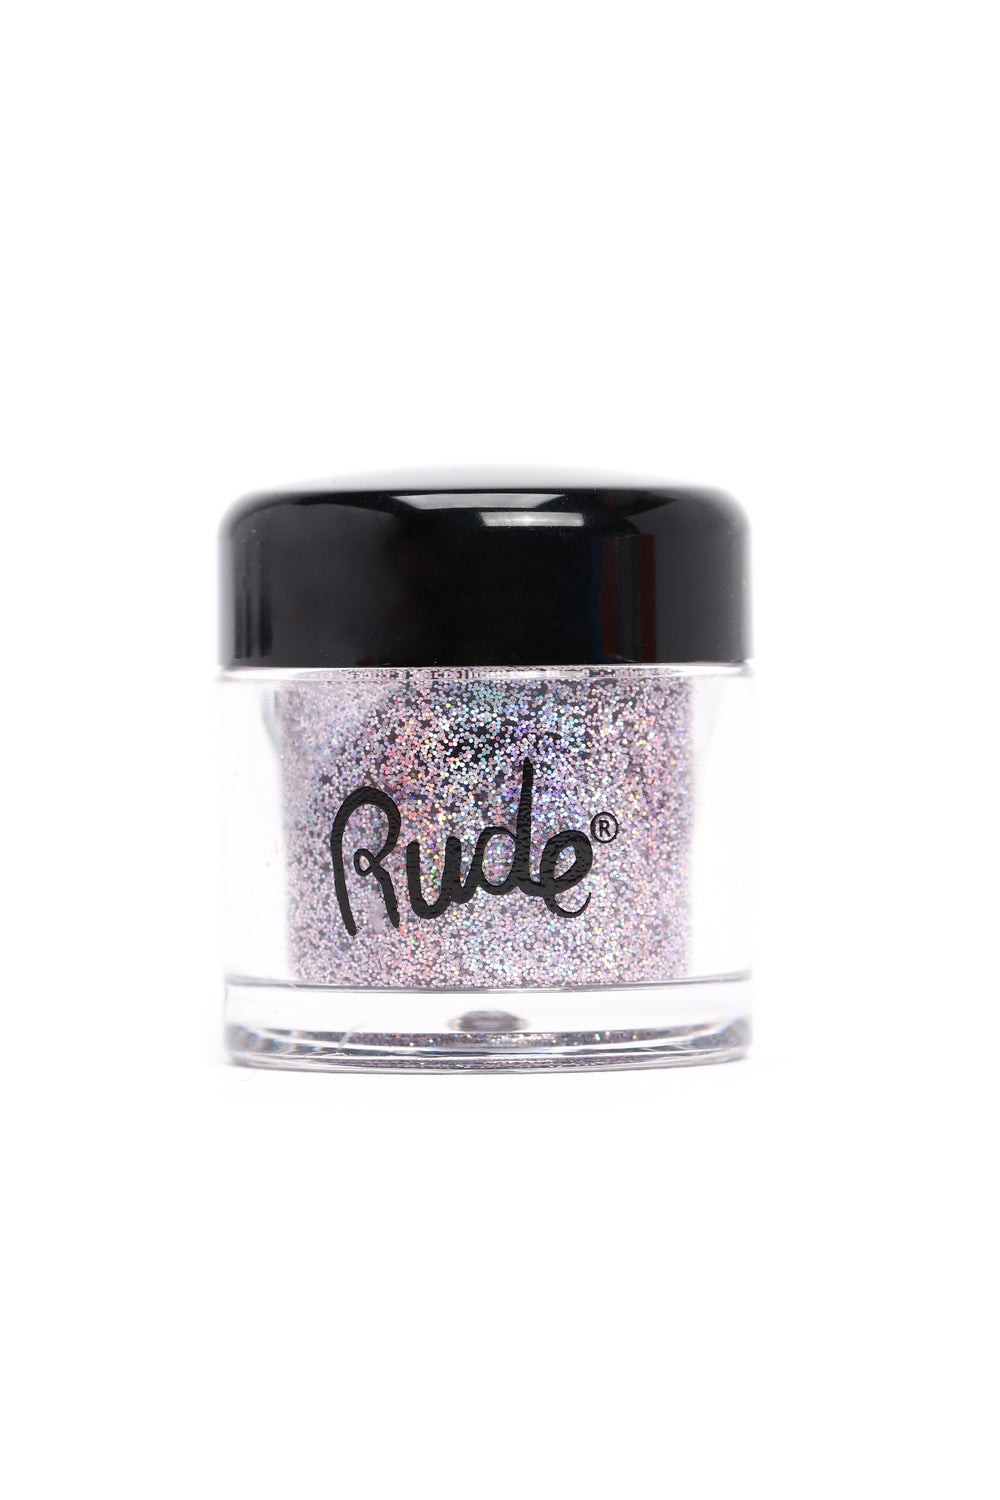 Rude Cosmetics You Glit Up My Life - Gimme Euphoria